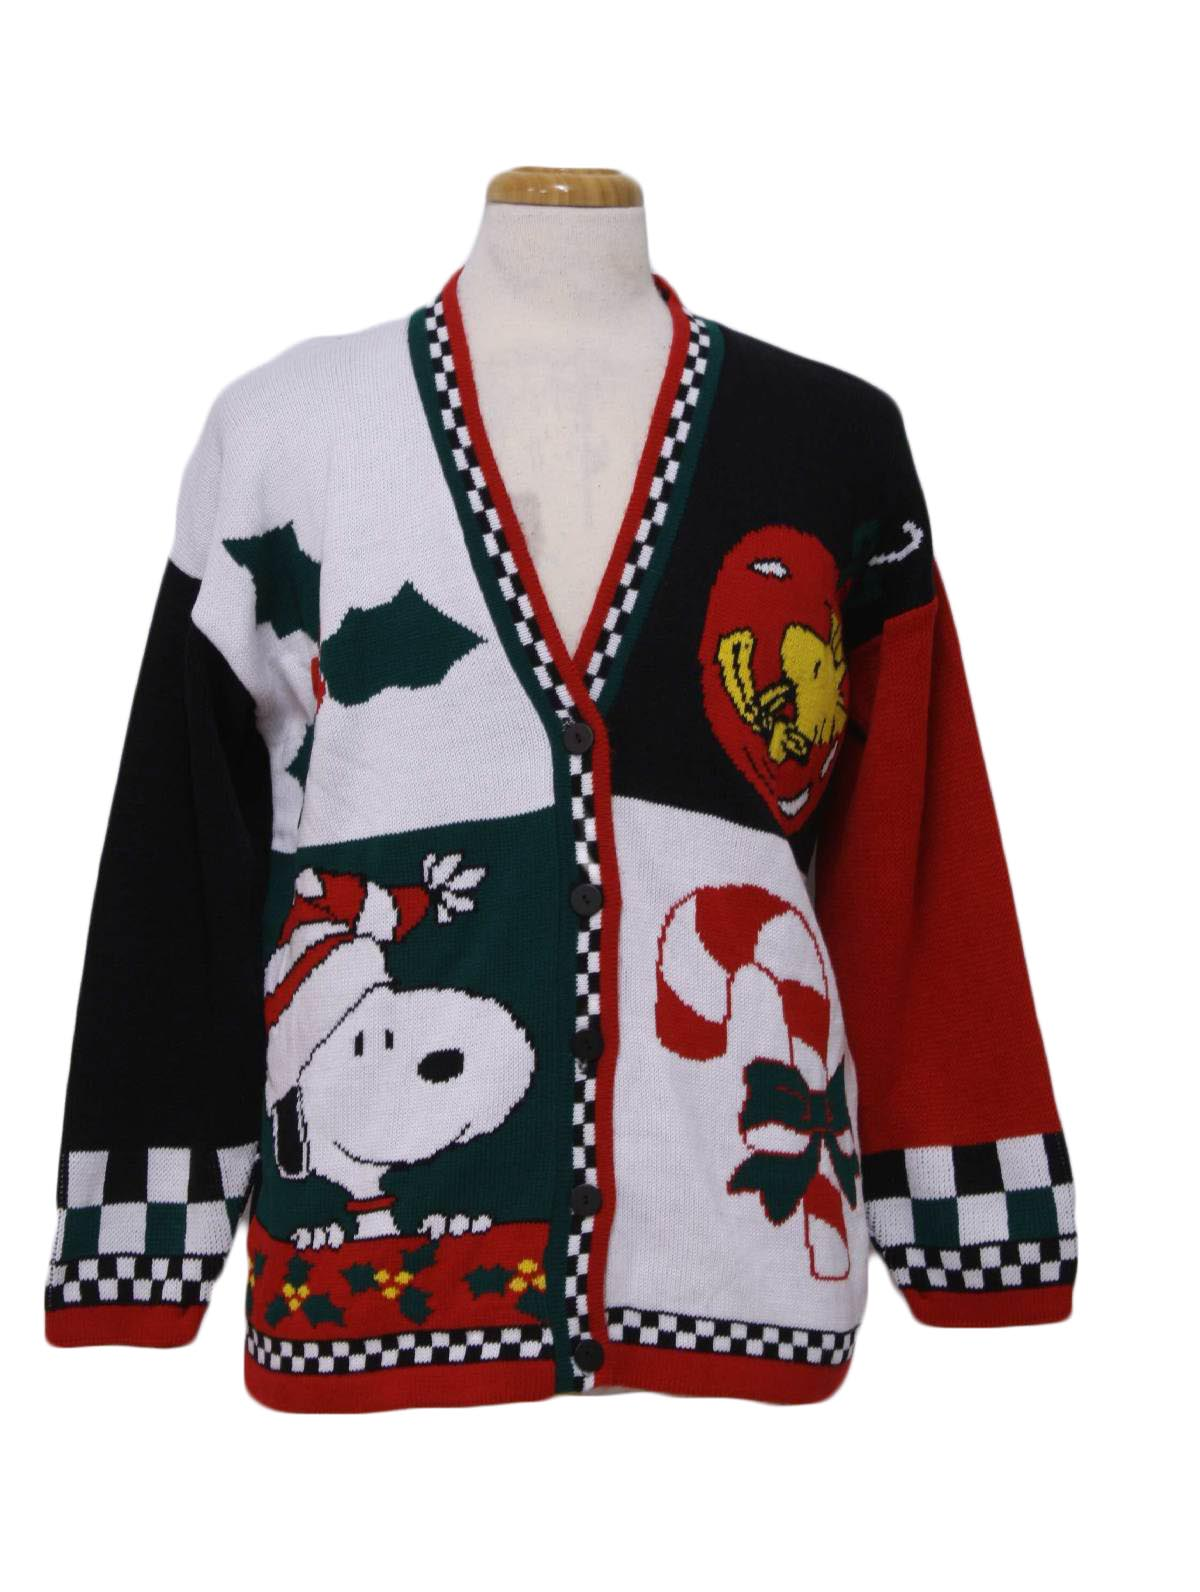 Retro 80's Vintage Snoopy Ugly Christmas Sweater: 80s authentic ...